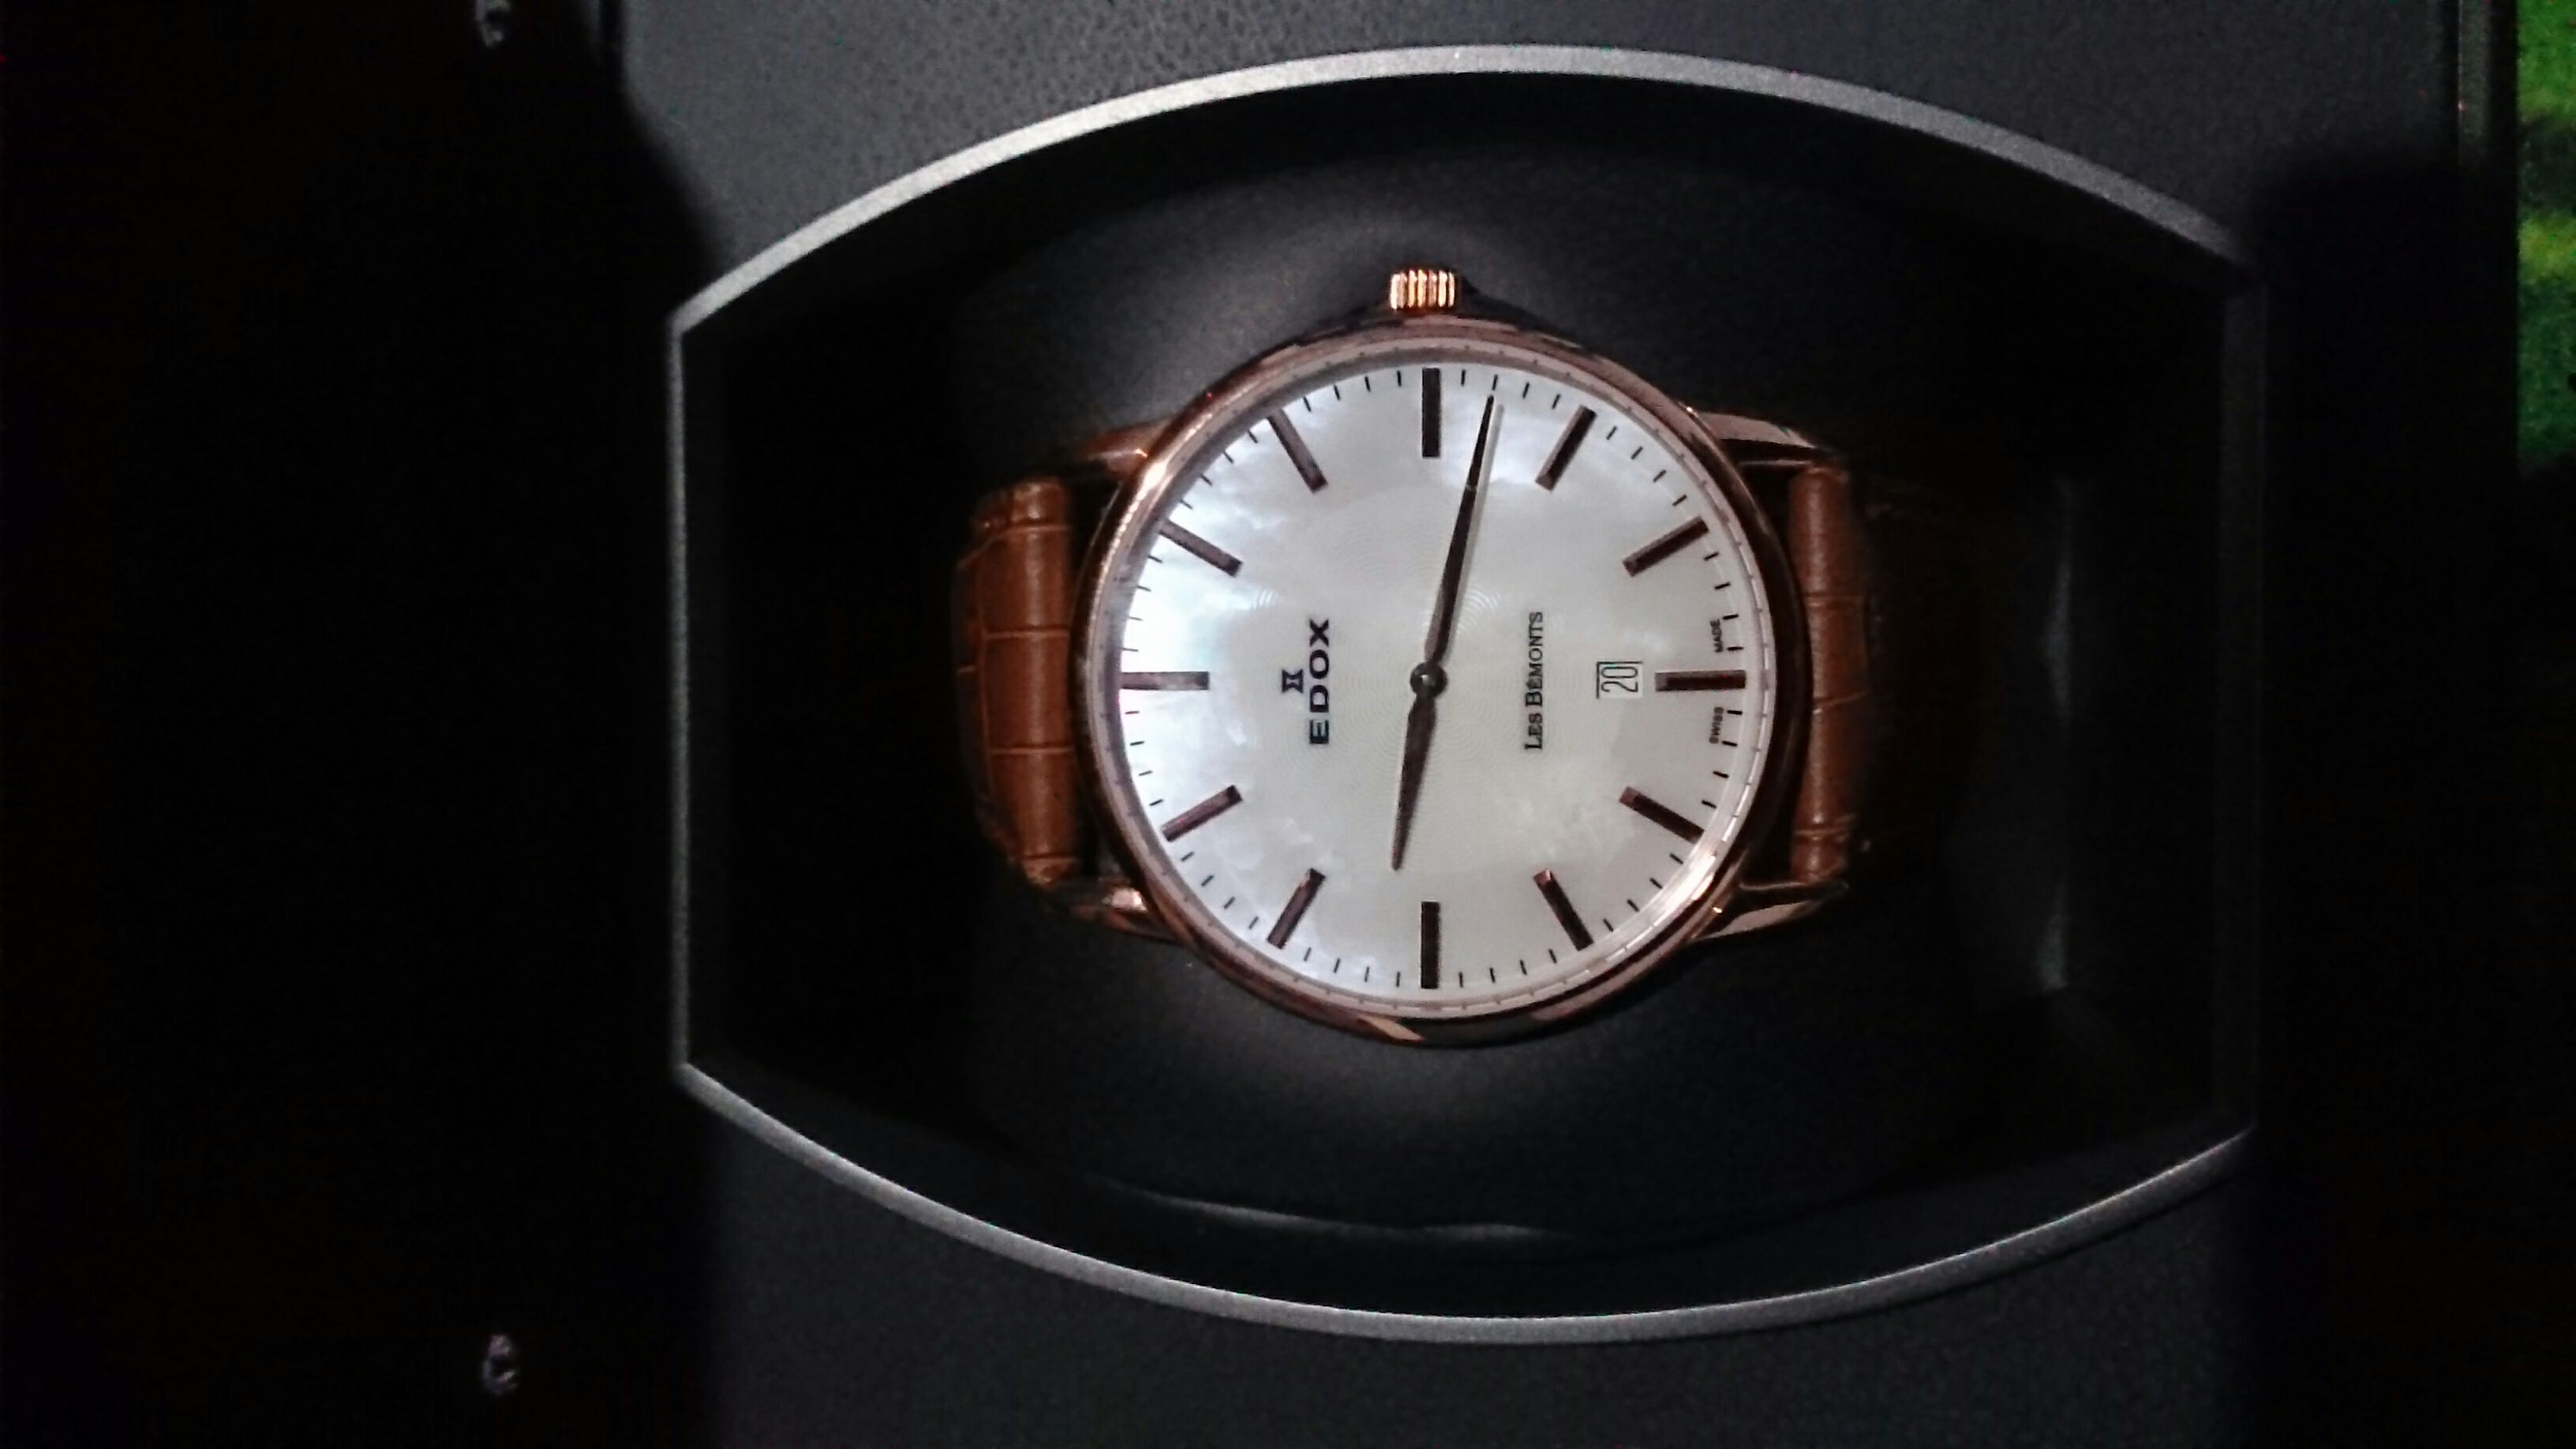 Mother oficina pearl Watch - Edox (560071) front image (front cover)